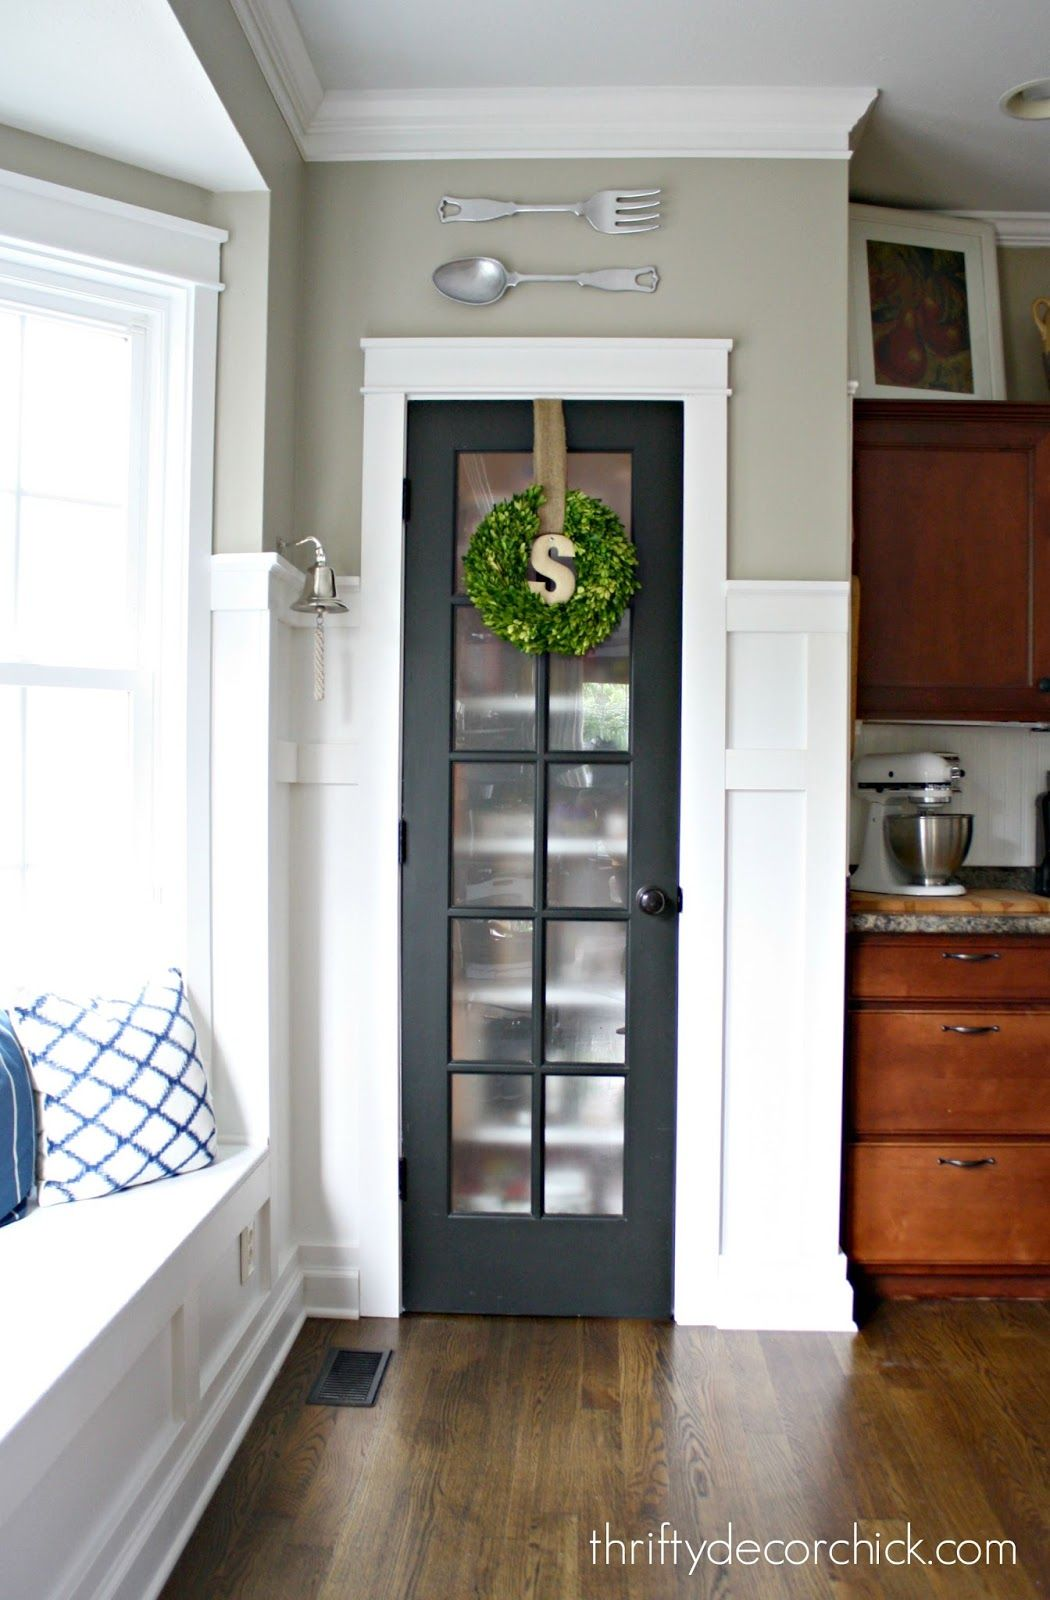 Create cohesion with a frosted glass door